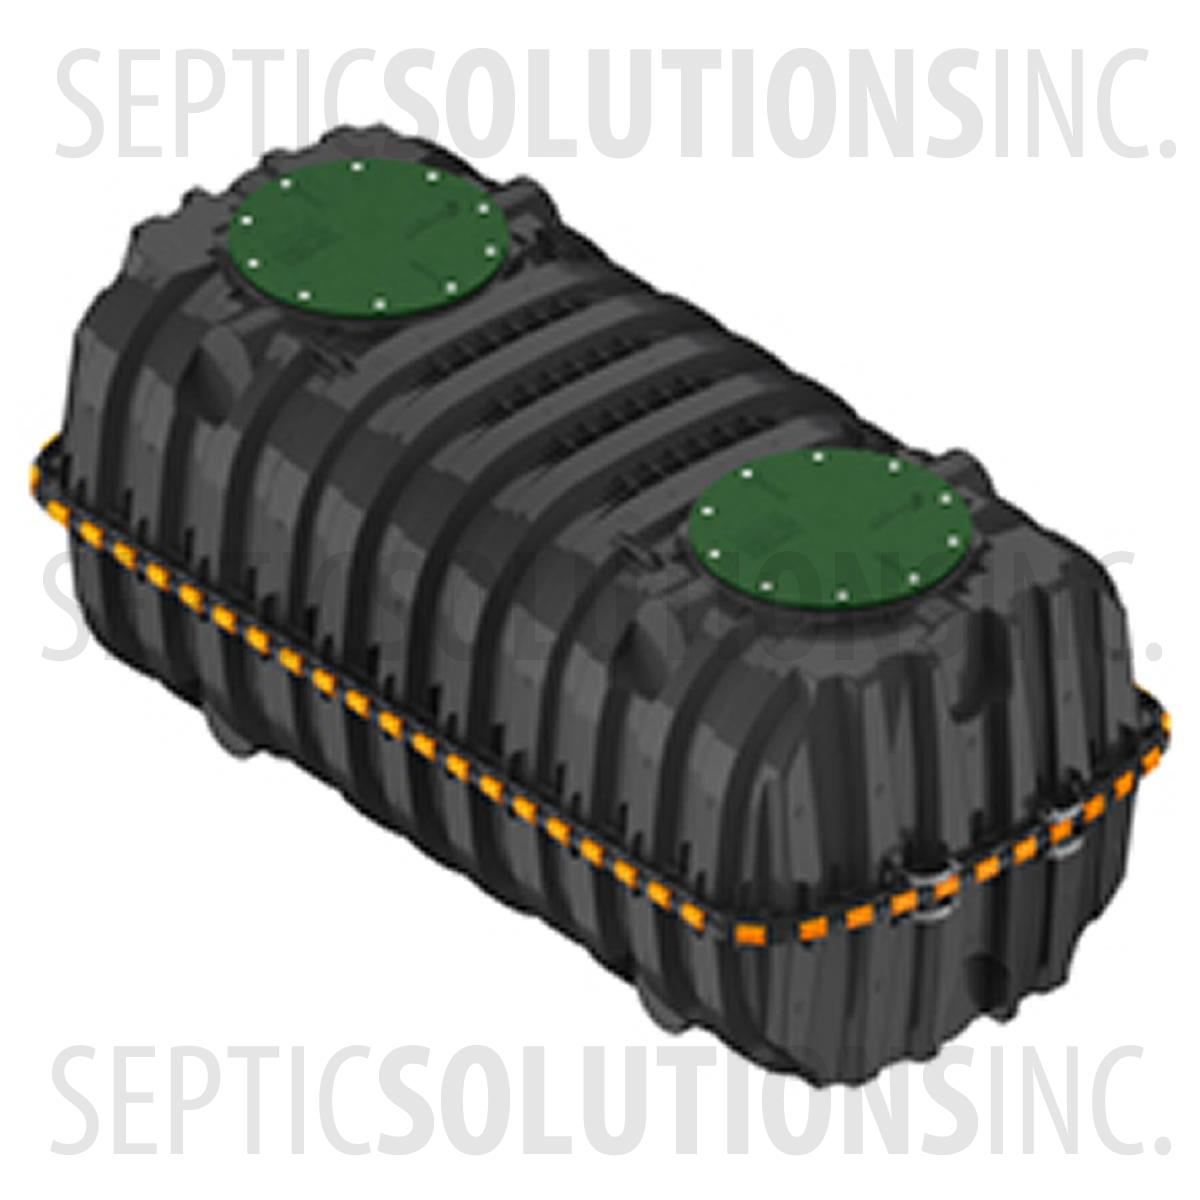 Infiltrator 1060 Gallon Septic Tank Im1060 Septic